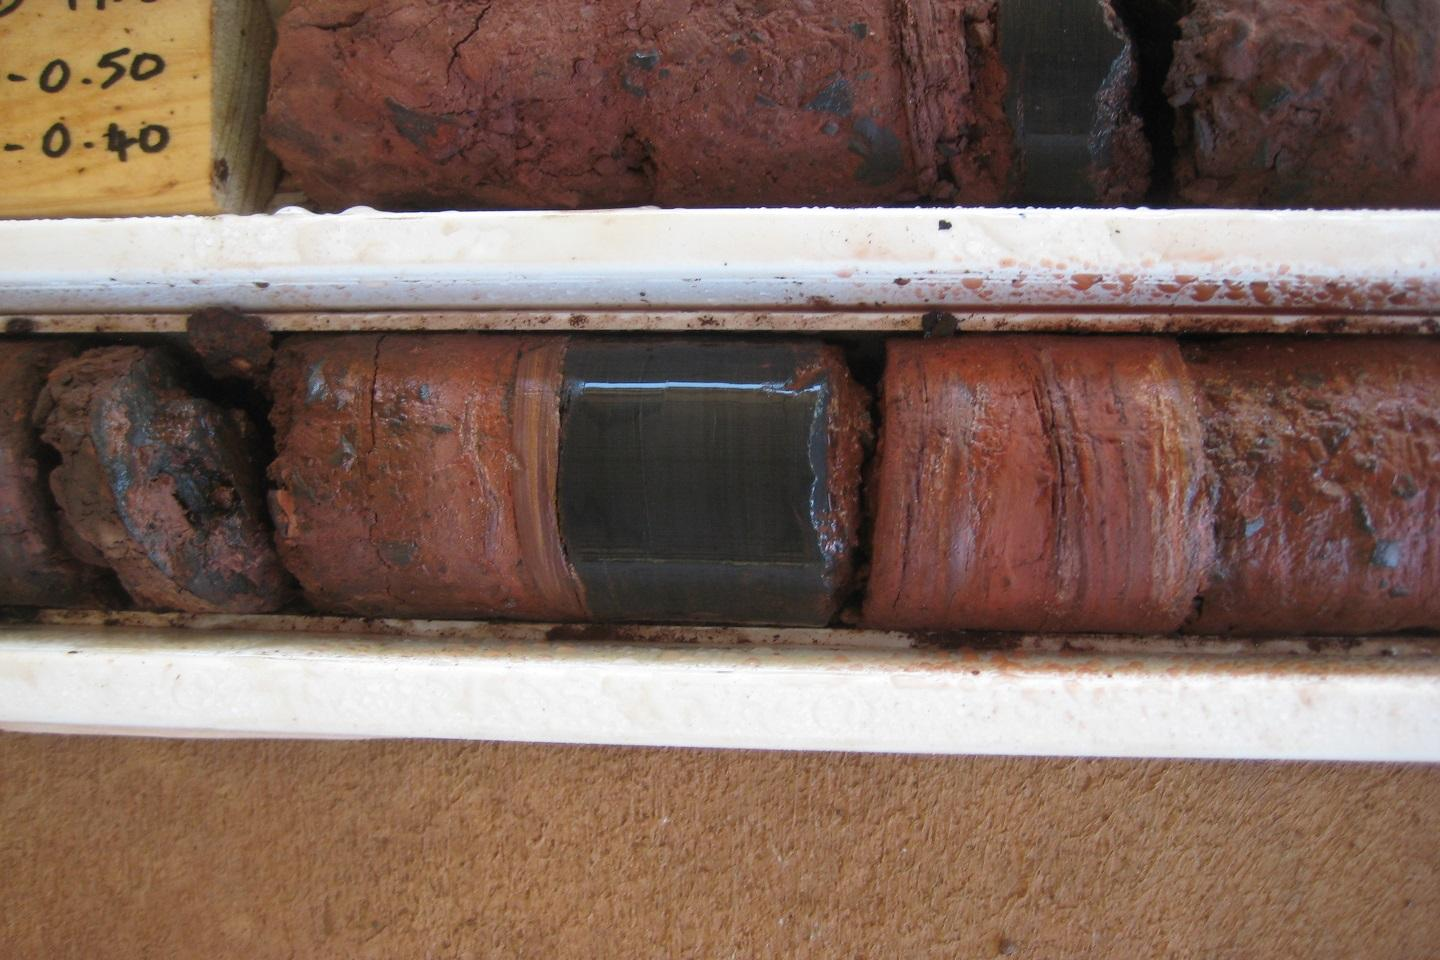 Element 25 tables outstanding manganese numbers in Pilbara